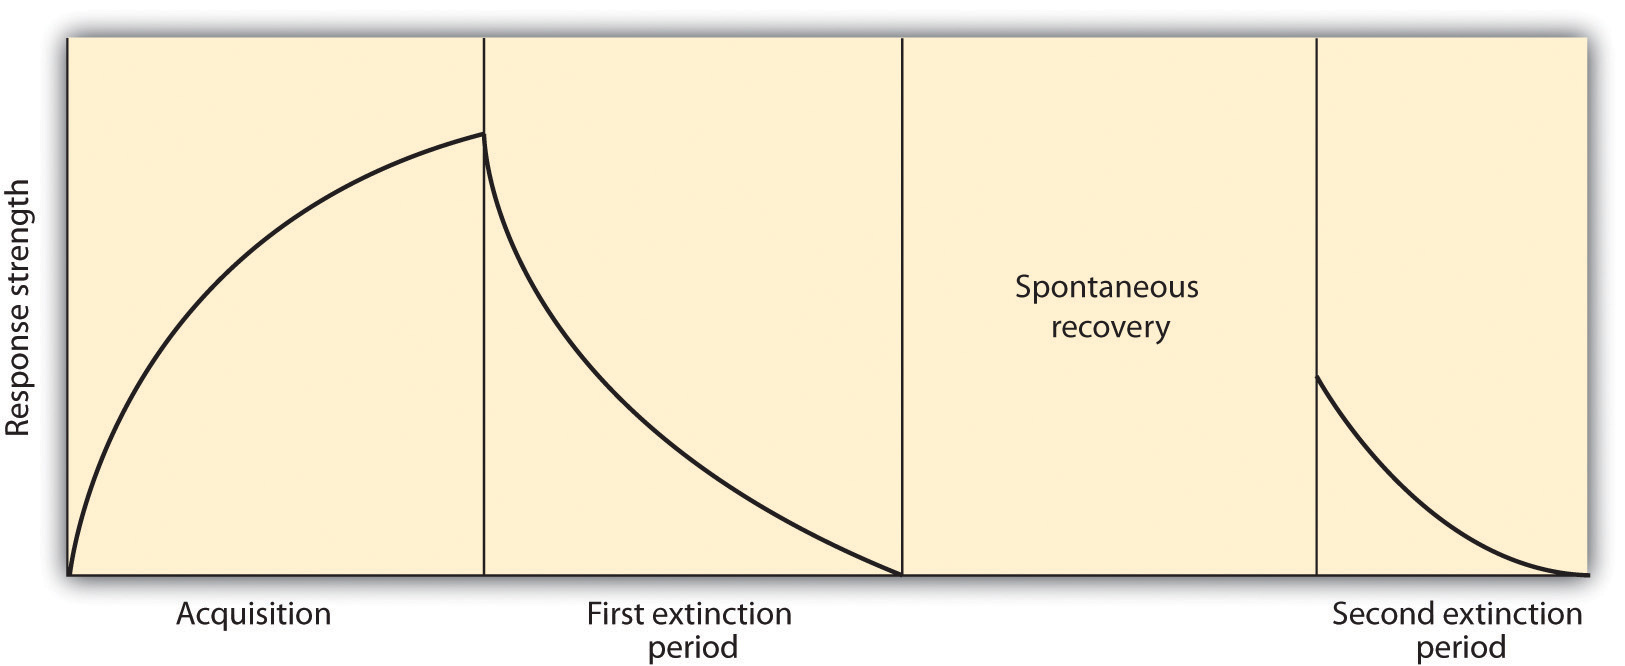 Acquisition: The CS and the US are repeatedly paired together and behavior increases. Extinction: The CS is repeatedly presented alone, and the behavior slowly decreases. Spontaneous recovery: After a pause, when the CS is again presented alone, the behavior may again occur and then again show extinction.